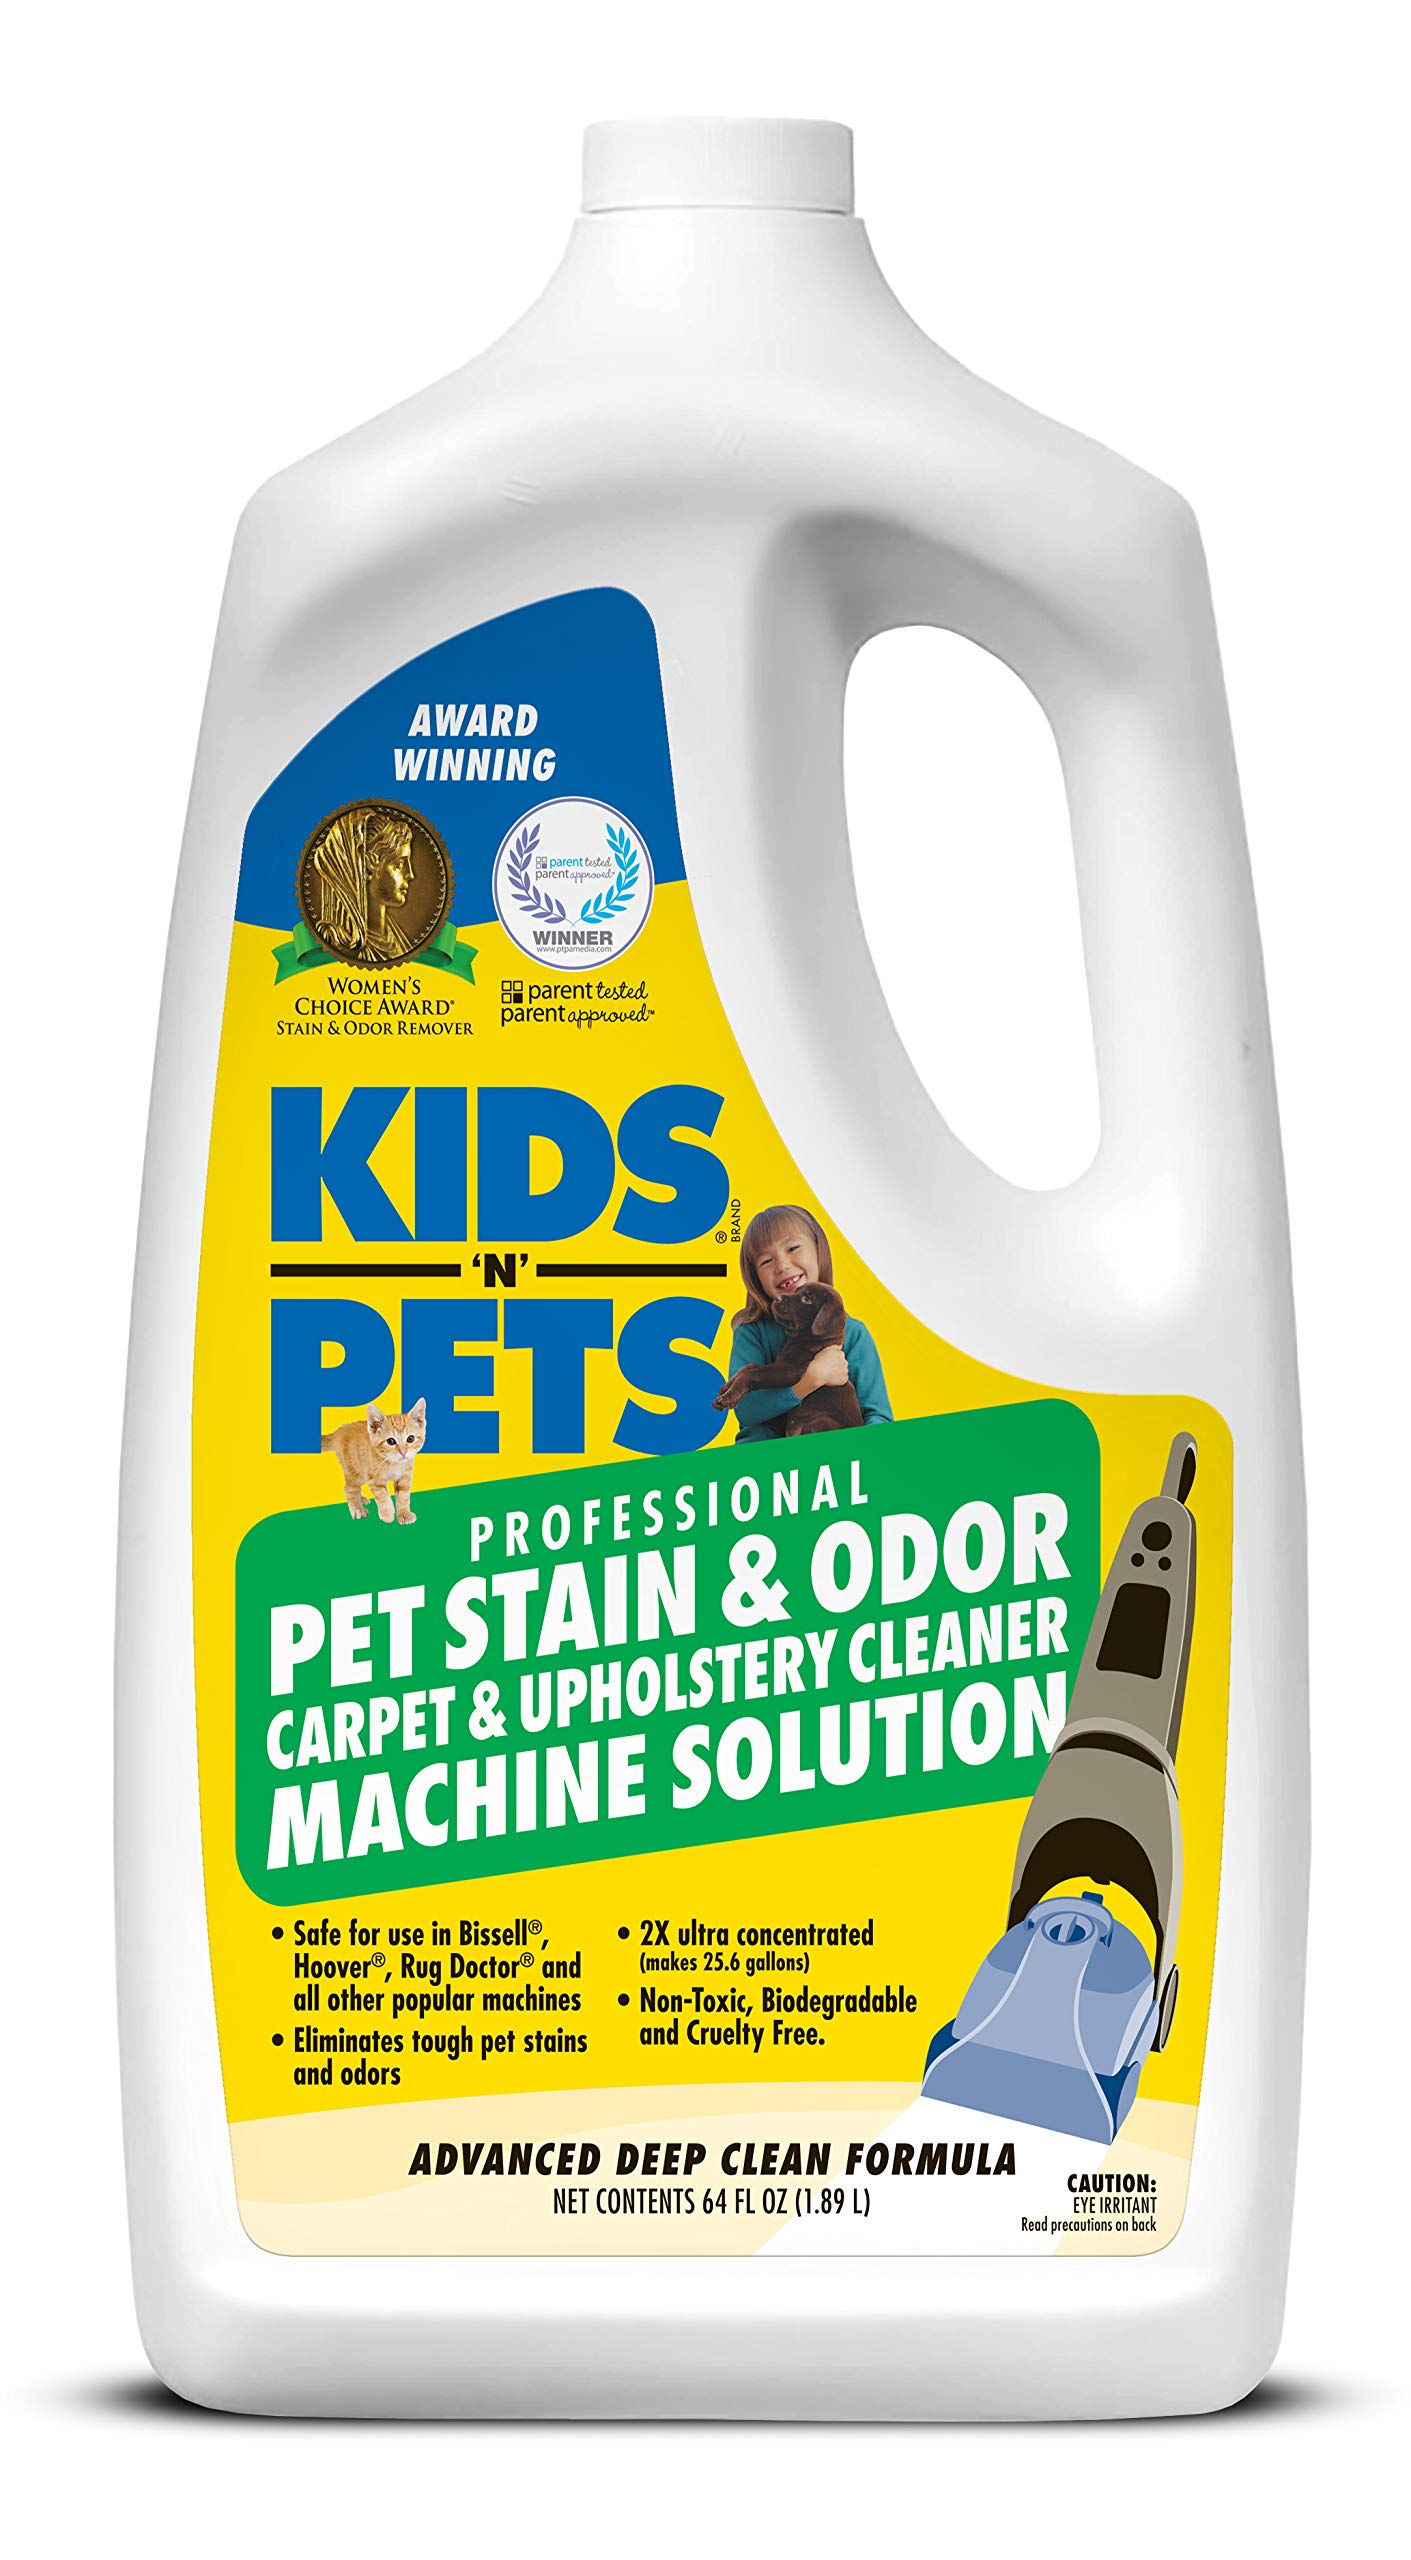 KIDS 'N' PETS - Pet Stain & Odor - Carpet & Upholstery Cleaner Machine Solution – 64 oz   Professional Strength Formula Deeply Cleans Carpet & Upholstery   Non-Toxic & Child Safe